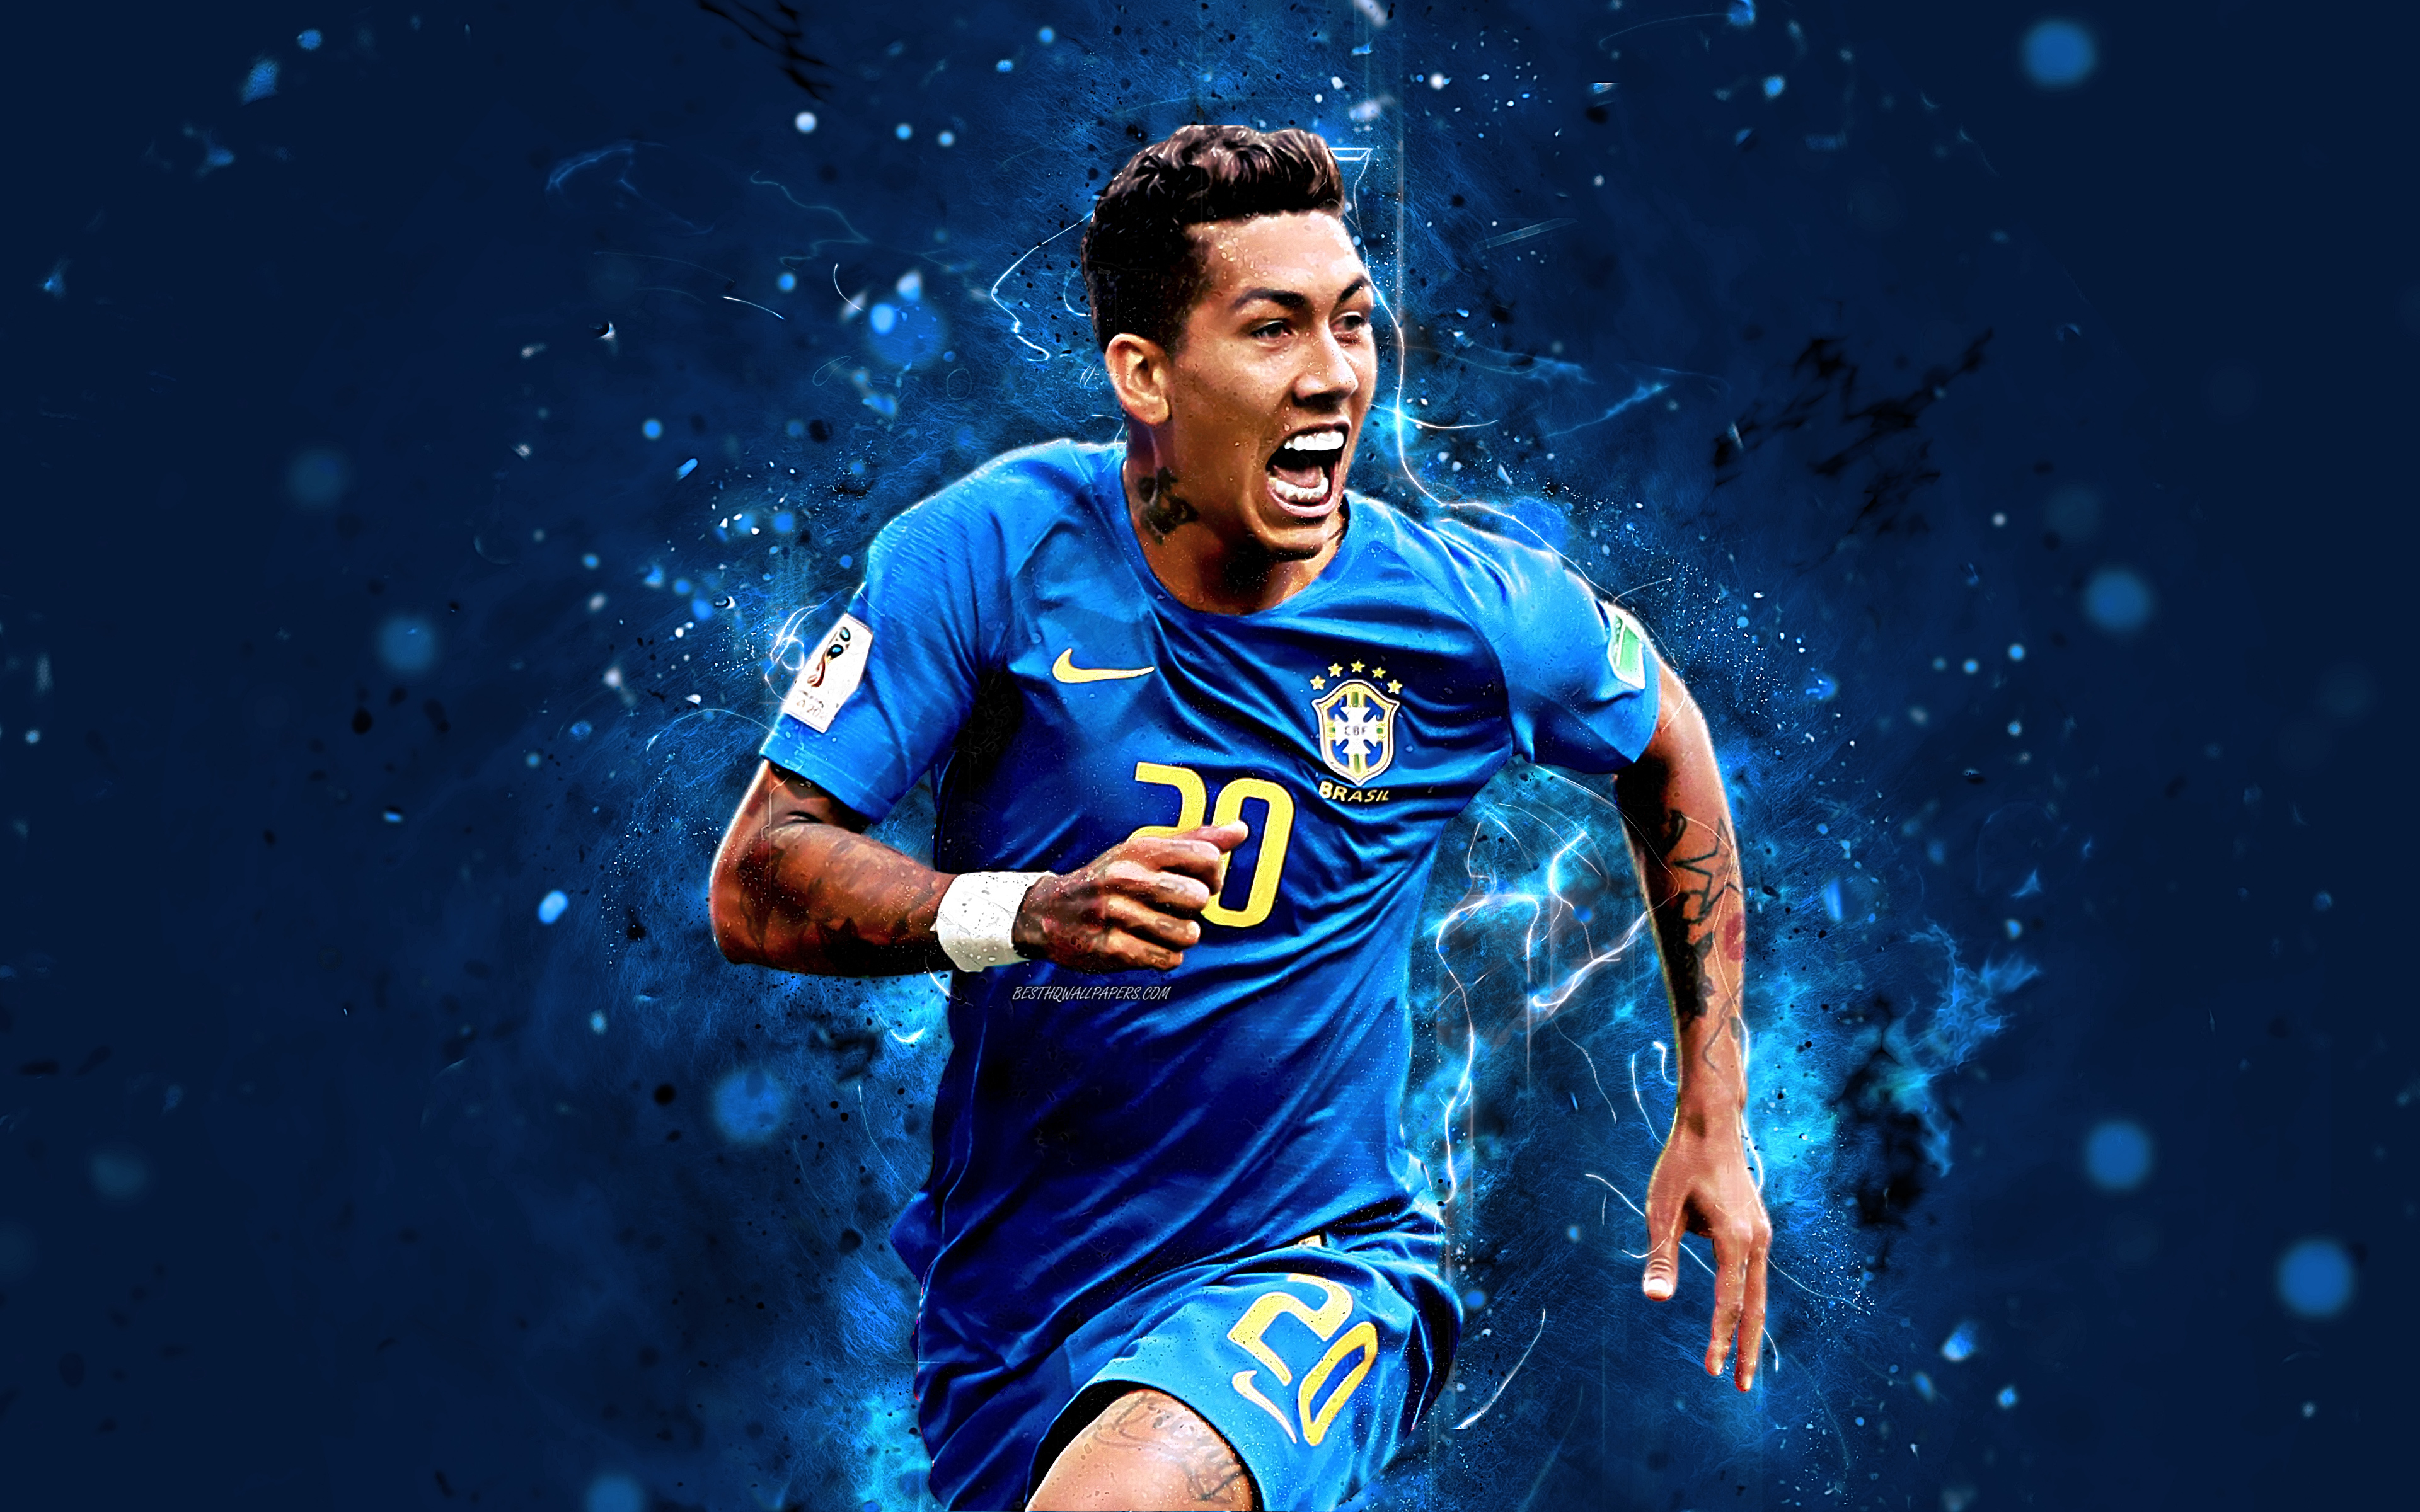 Roberto Firmino HD Desktop Wallpapers At Liverpool FC